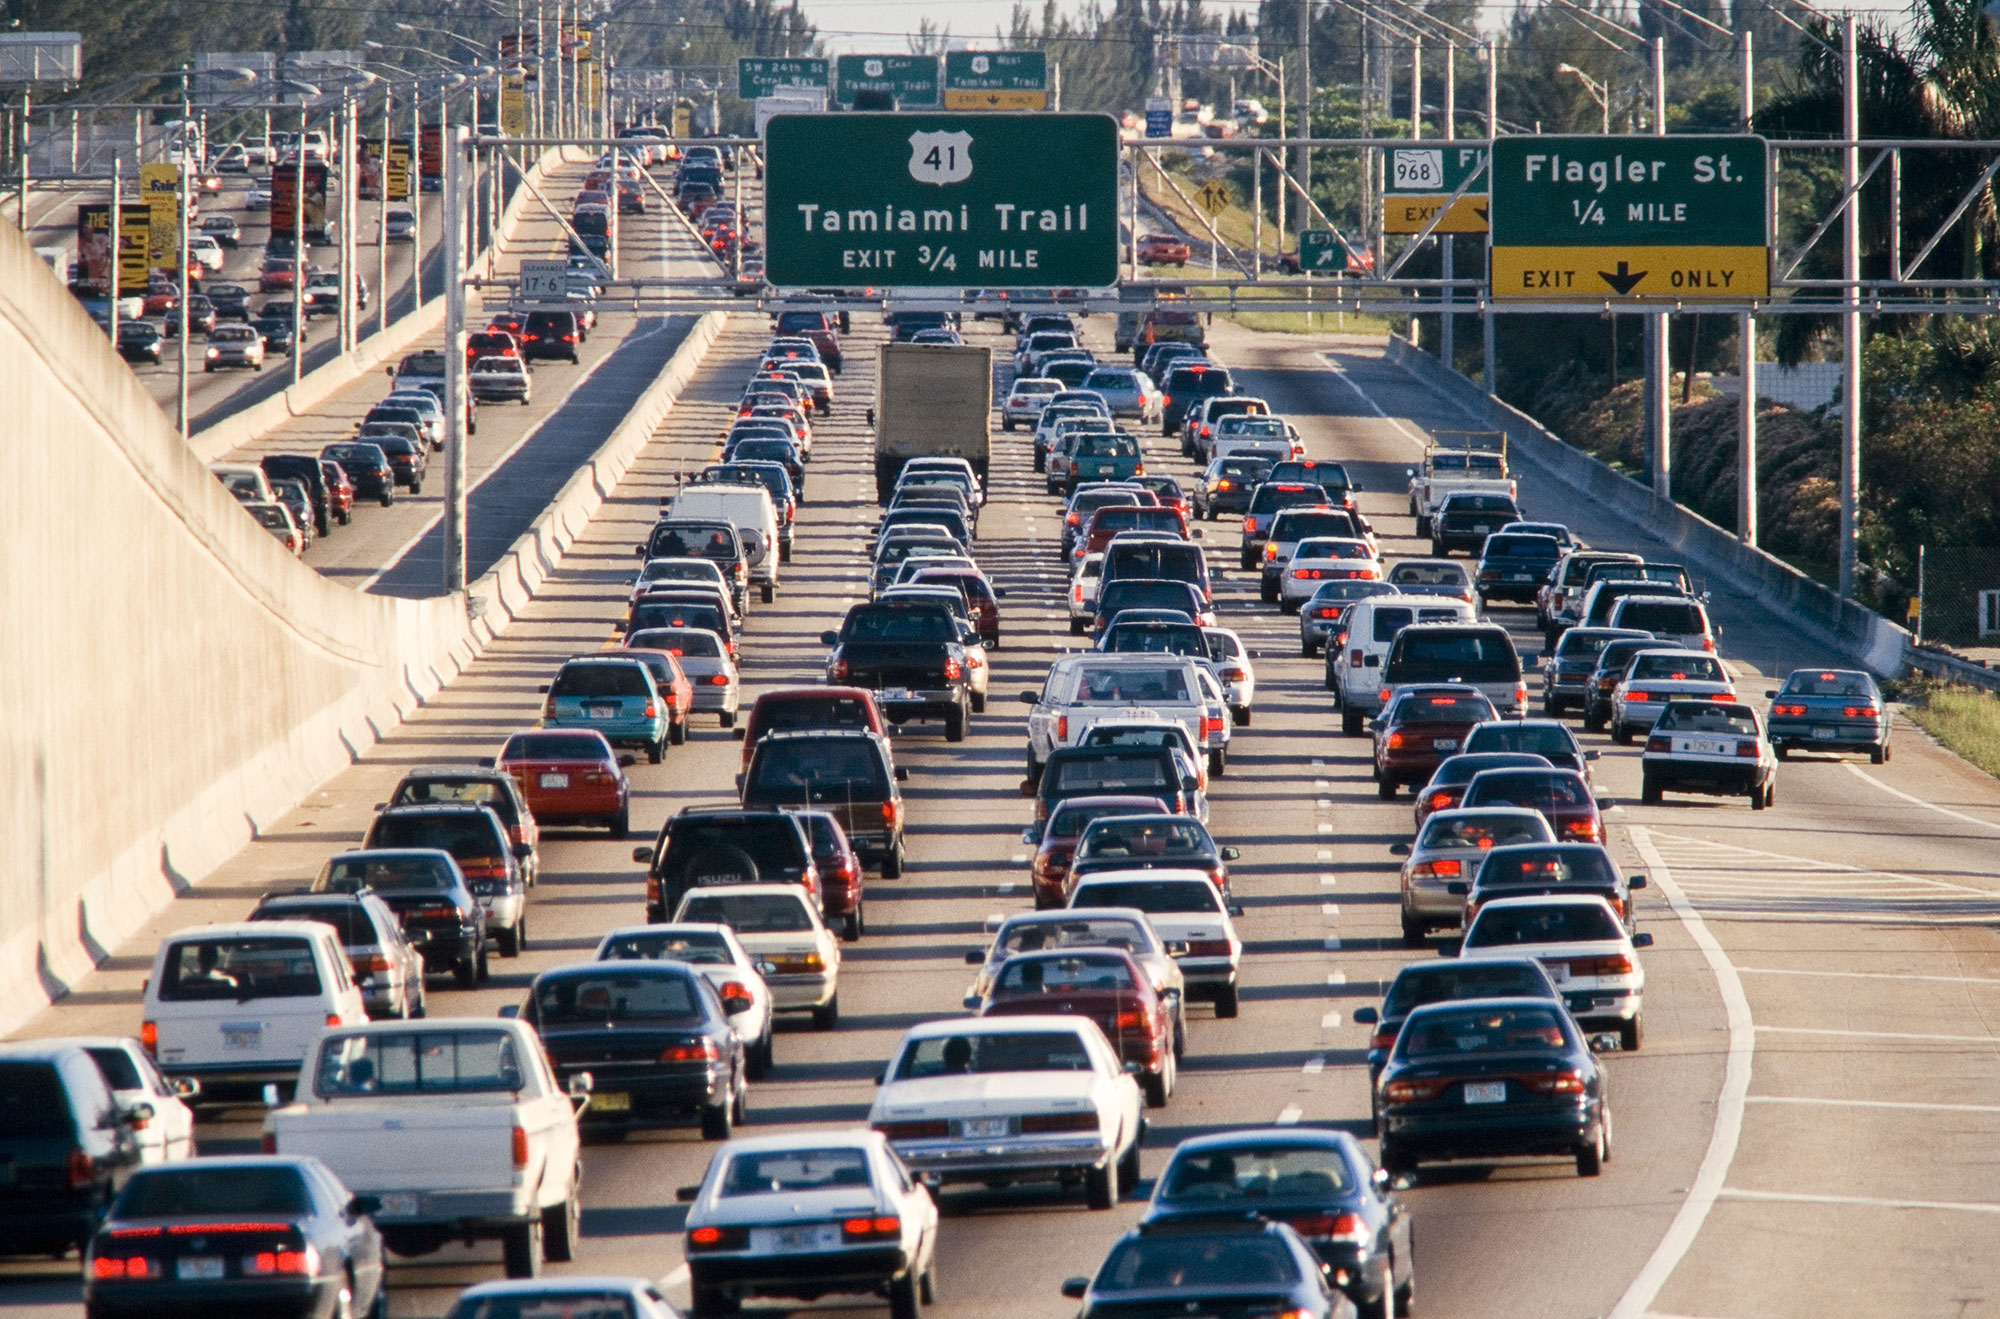 10 Most Congested Highways Amp Cities In The U S